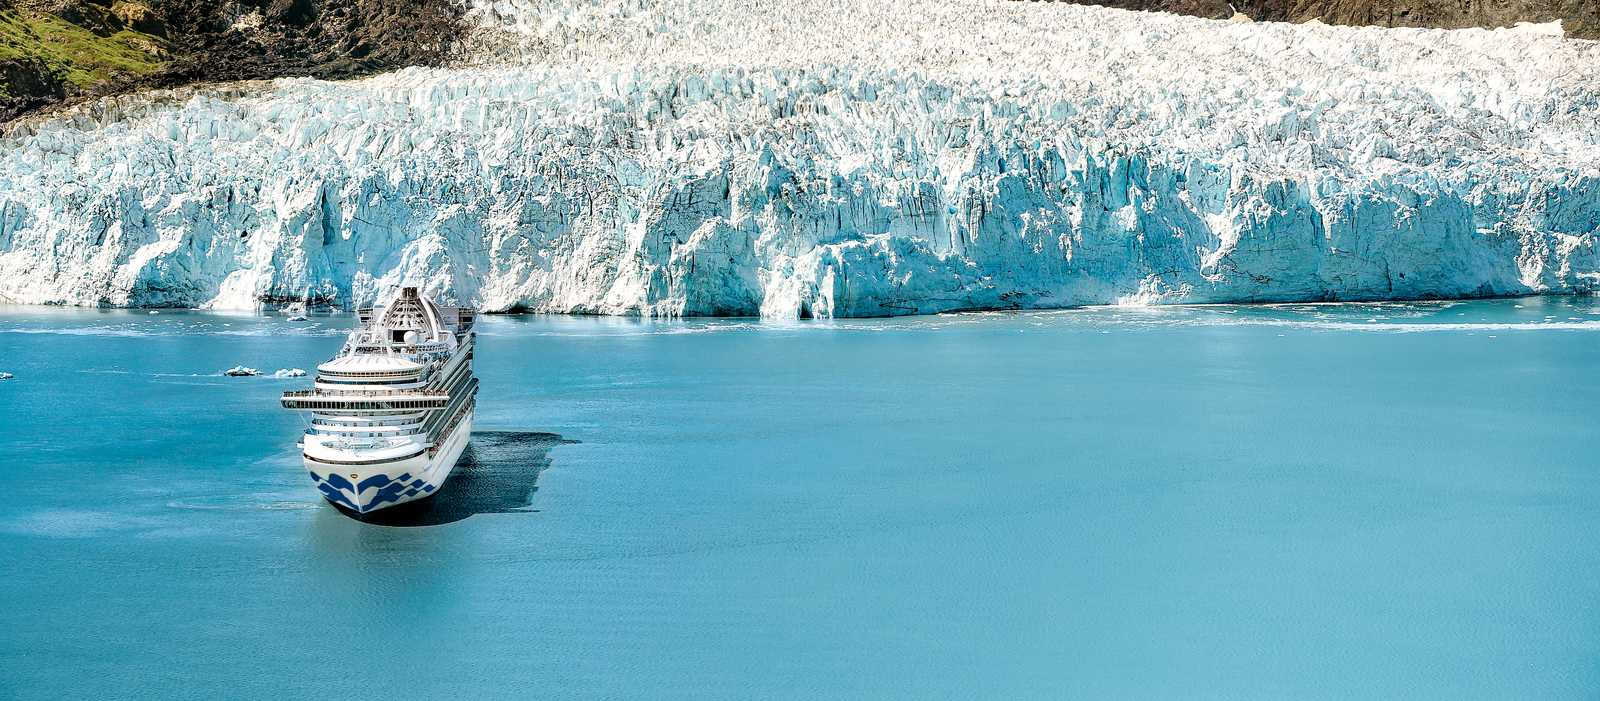 Die Star Princes in der Glacier Bay in Alaska